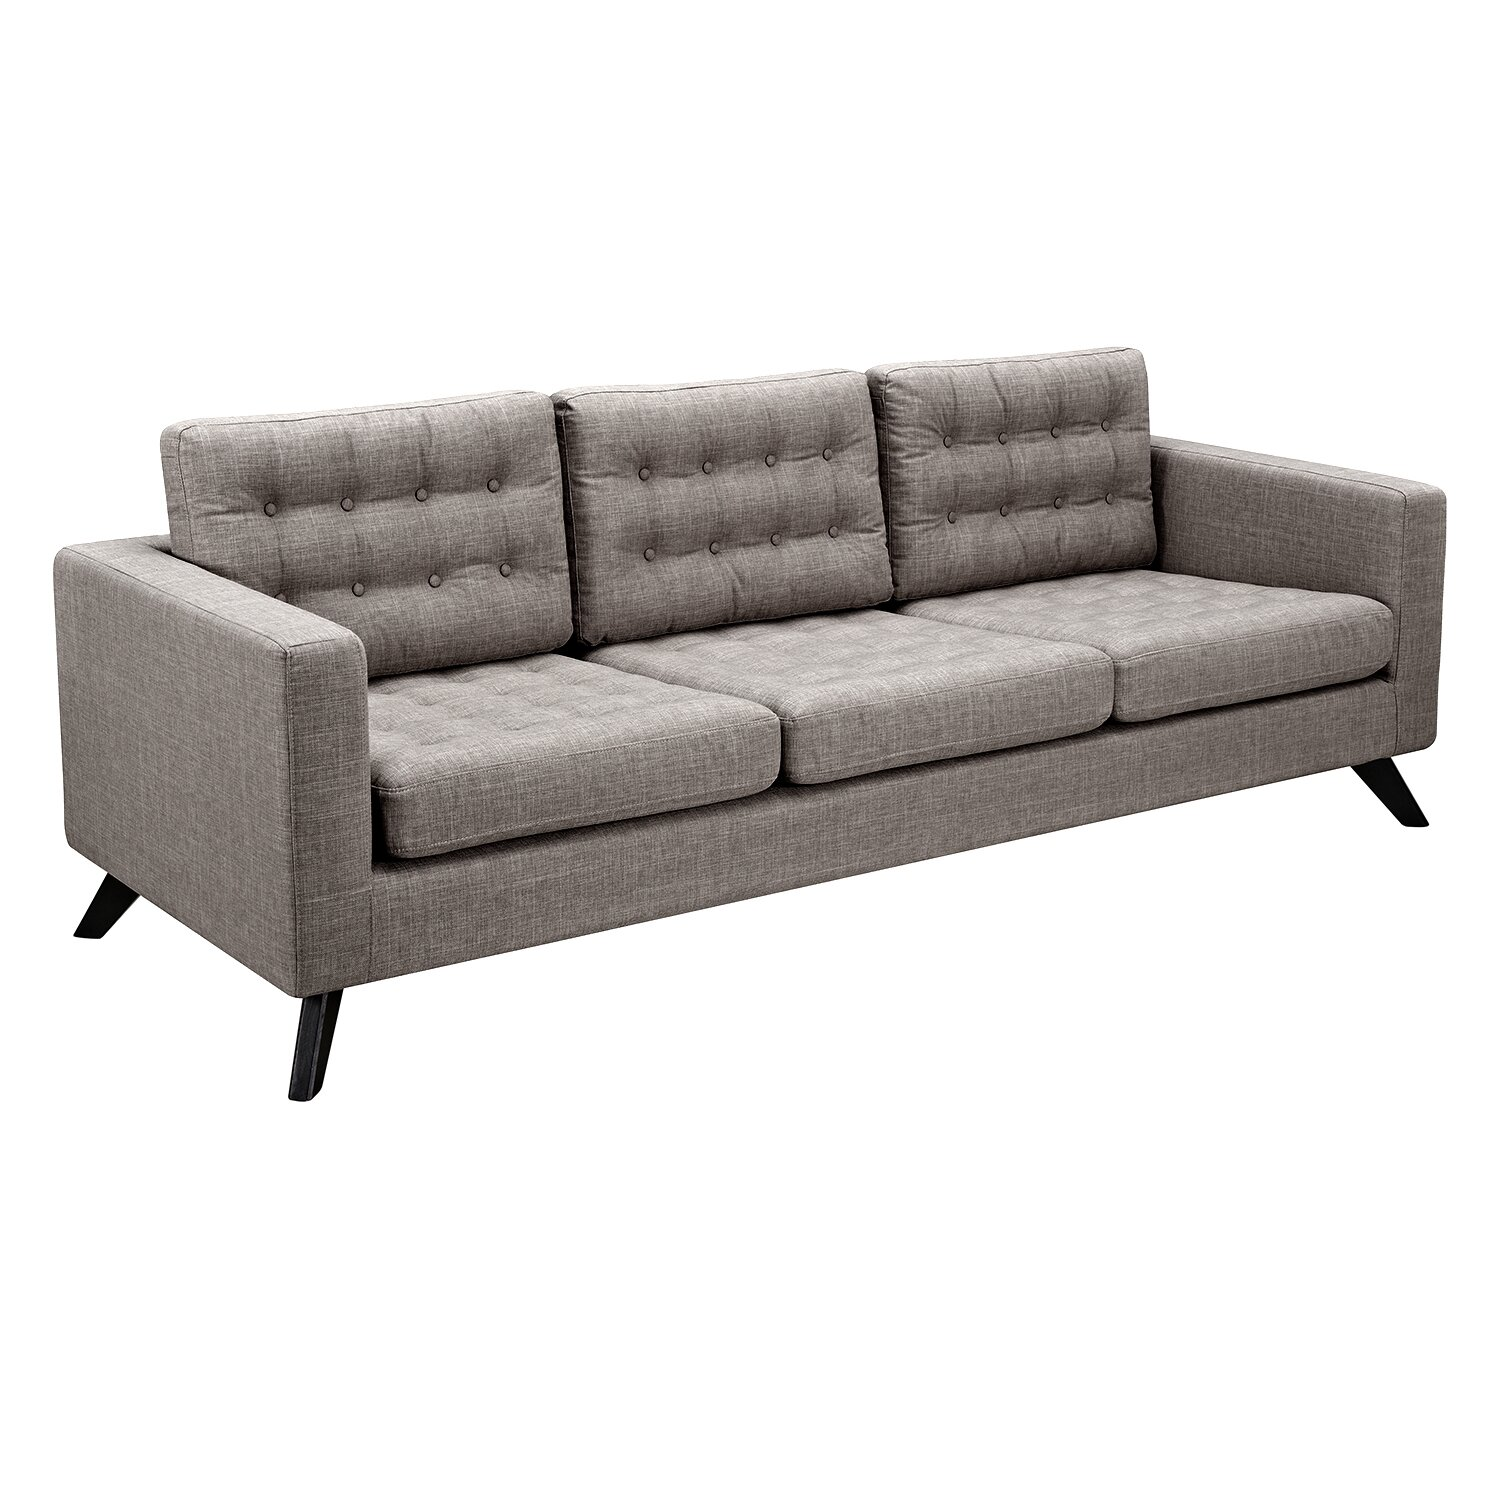 Nyekoncept mina sofa and ottoman reviews wayfair for Sofa ottomane